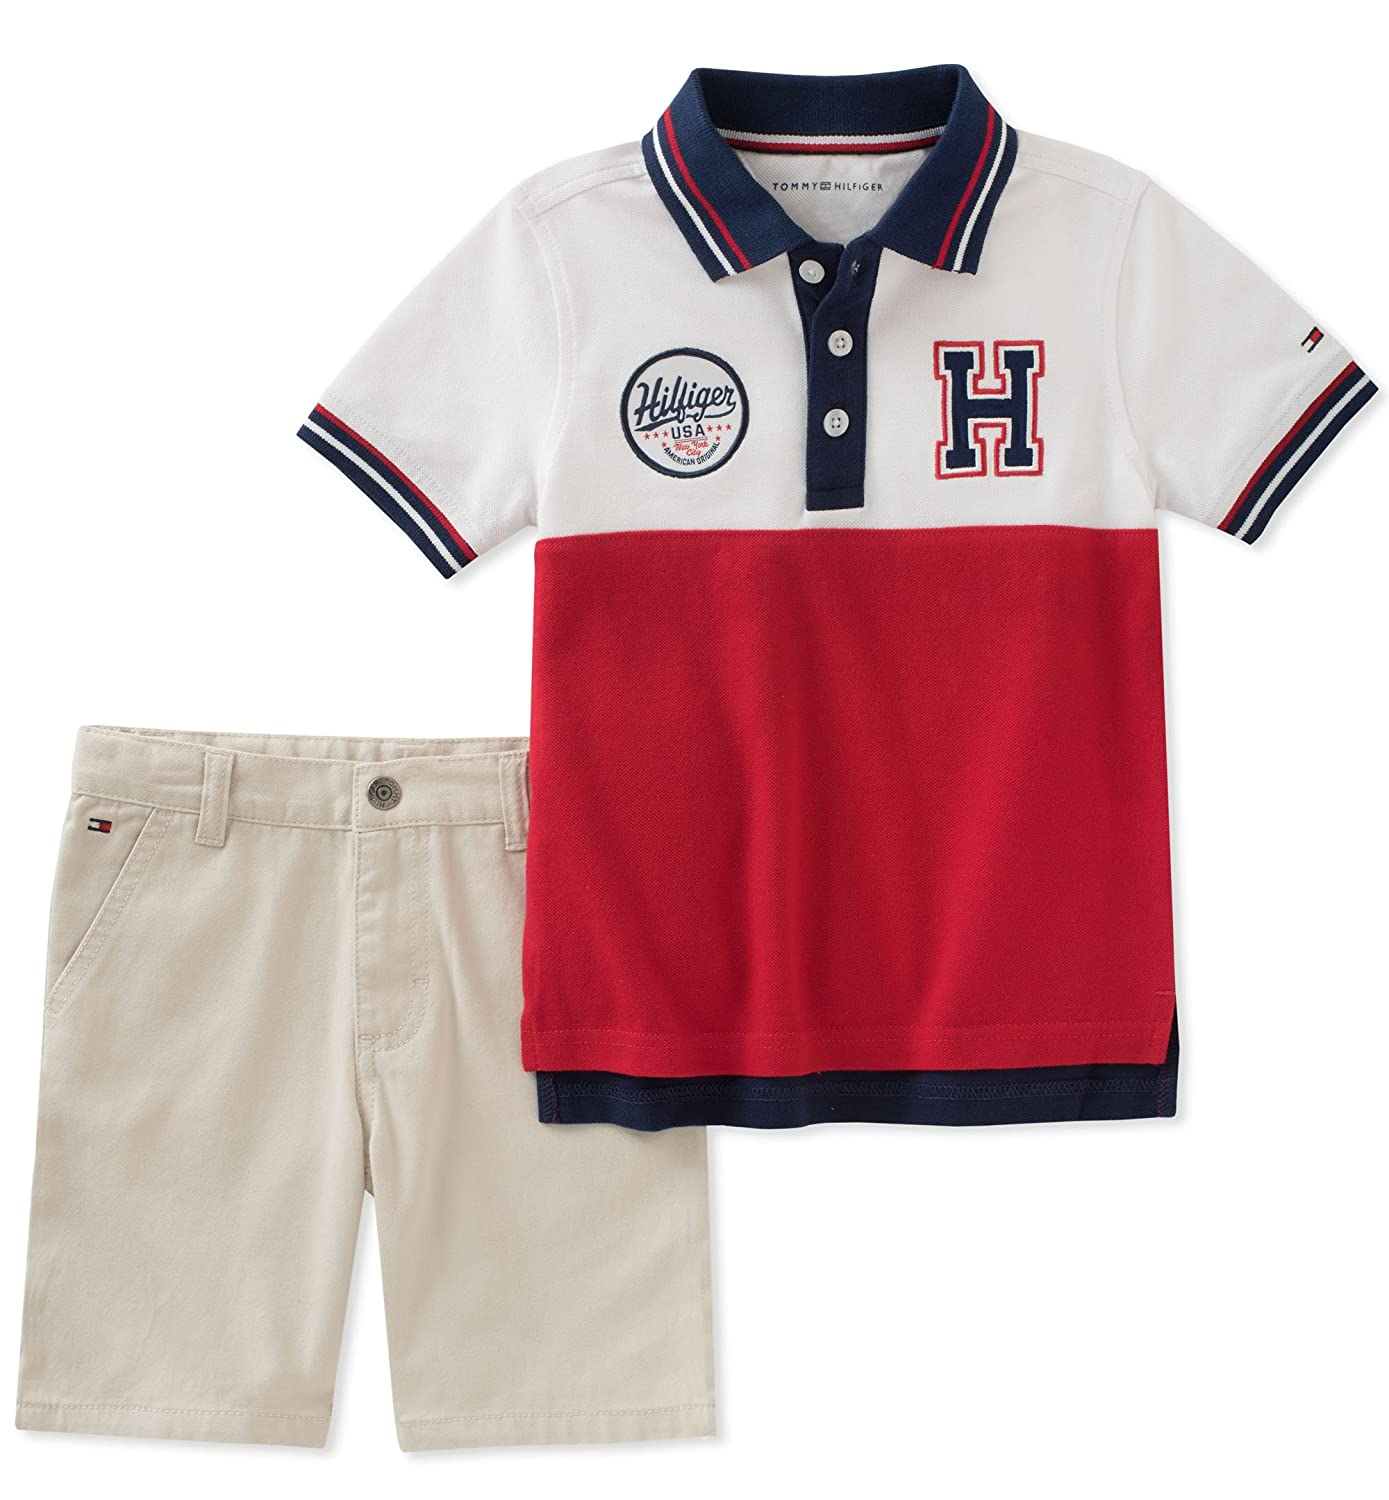 Tommy Hilfiger SHORTS ボーイズ